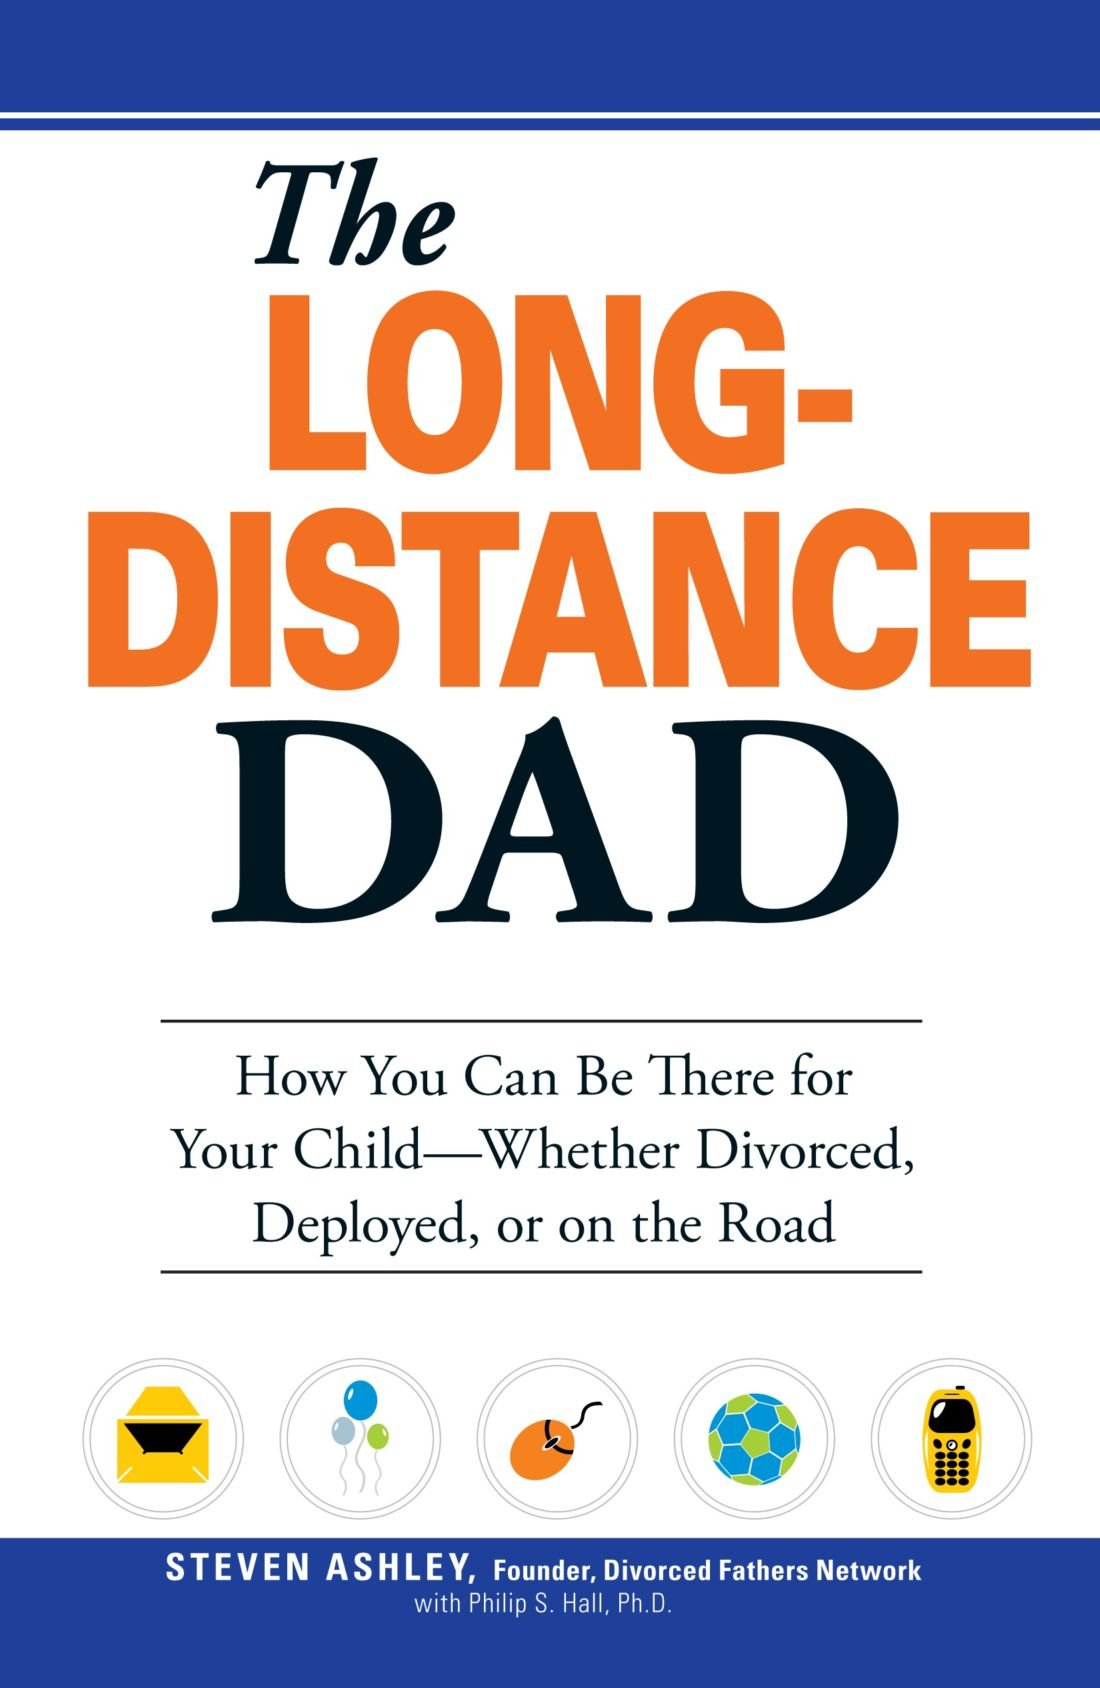 The Long-Distance Dad: How You Can Be There for Your Child-Whether  Divorced, Deployed, or On-the road.: Steven Ashley: 9781598694413:  Amazon.com: Books